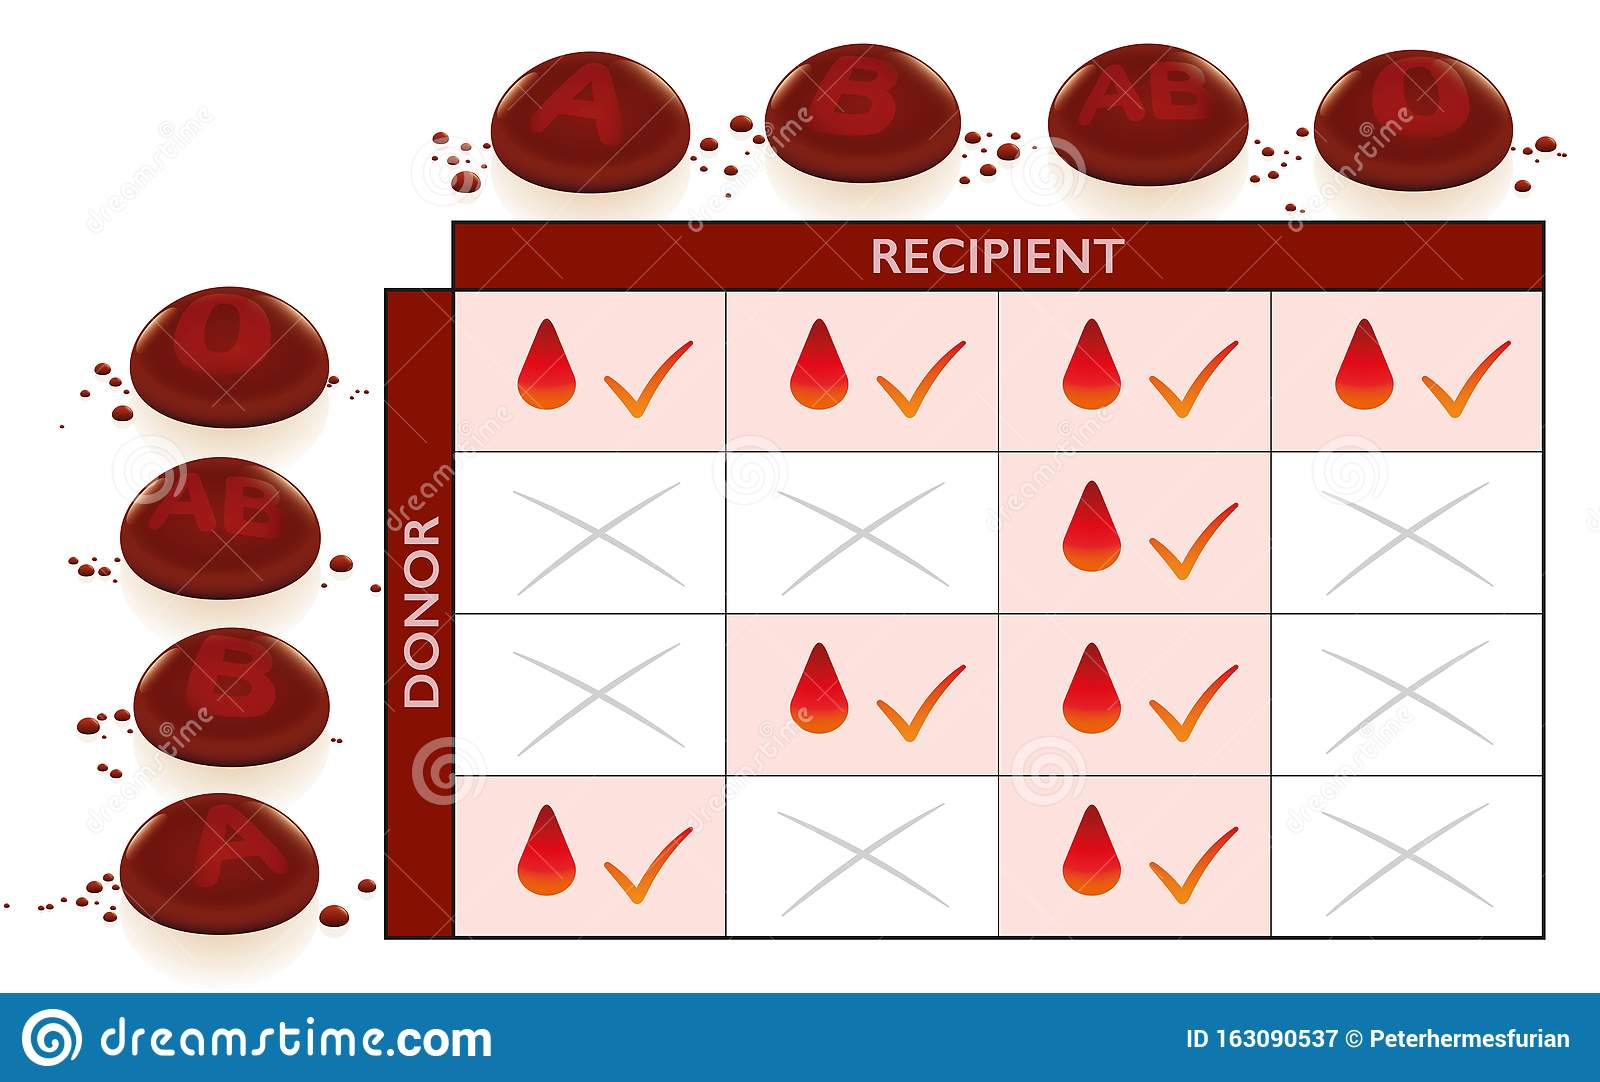 what is the universal blood recipient